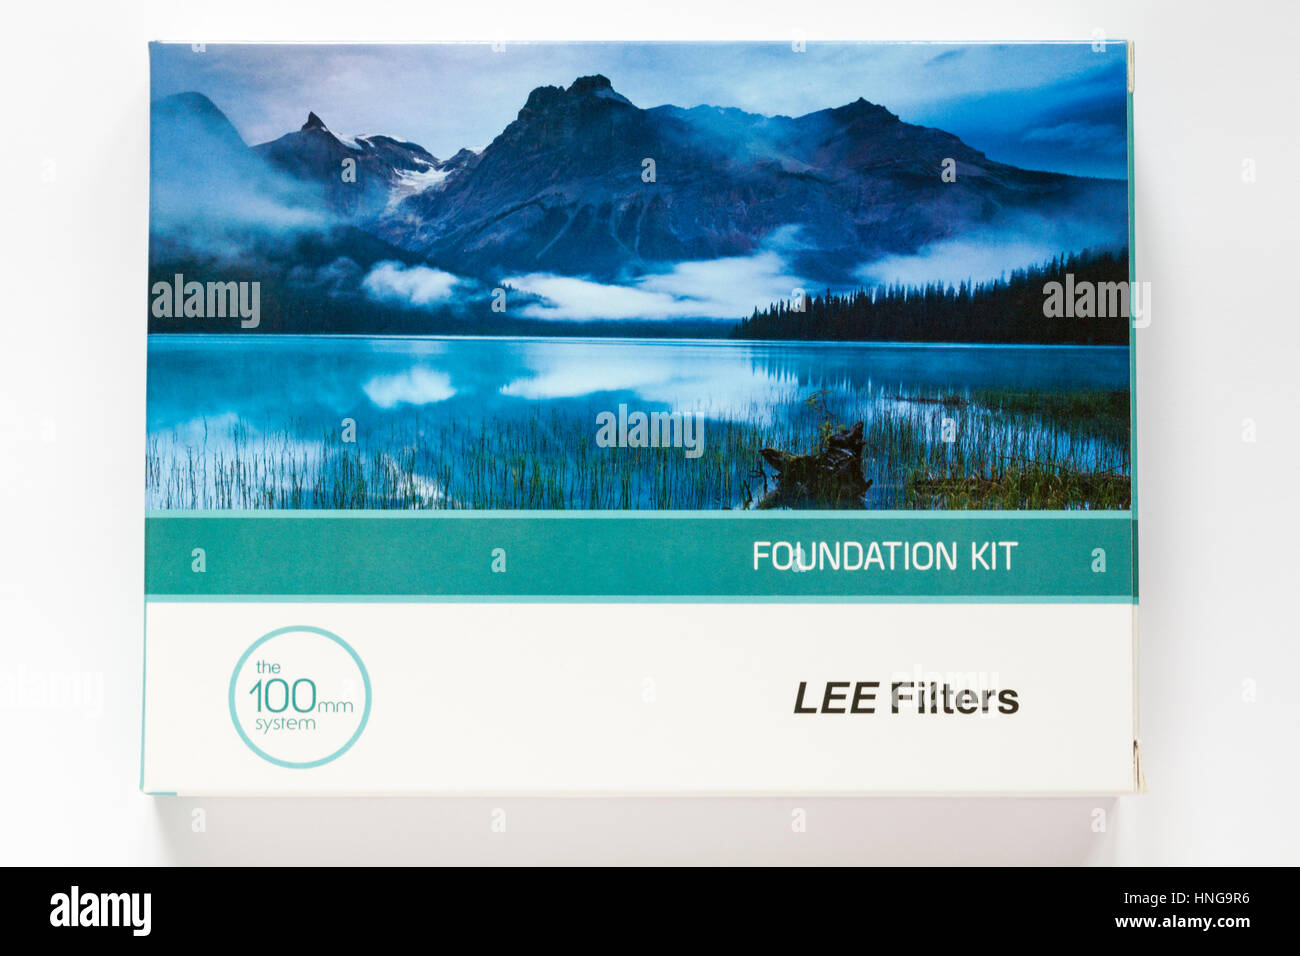 Lee Filters Stock Photos & Lee Filters Stock Images - Alamy